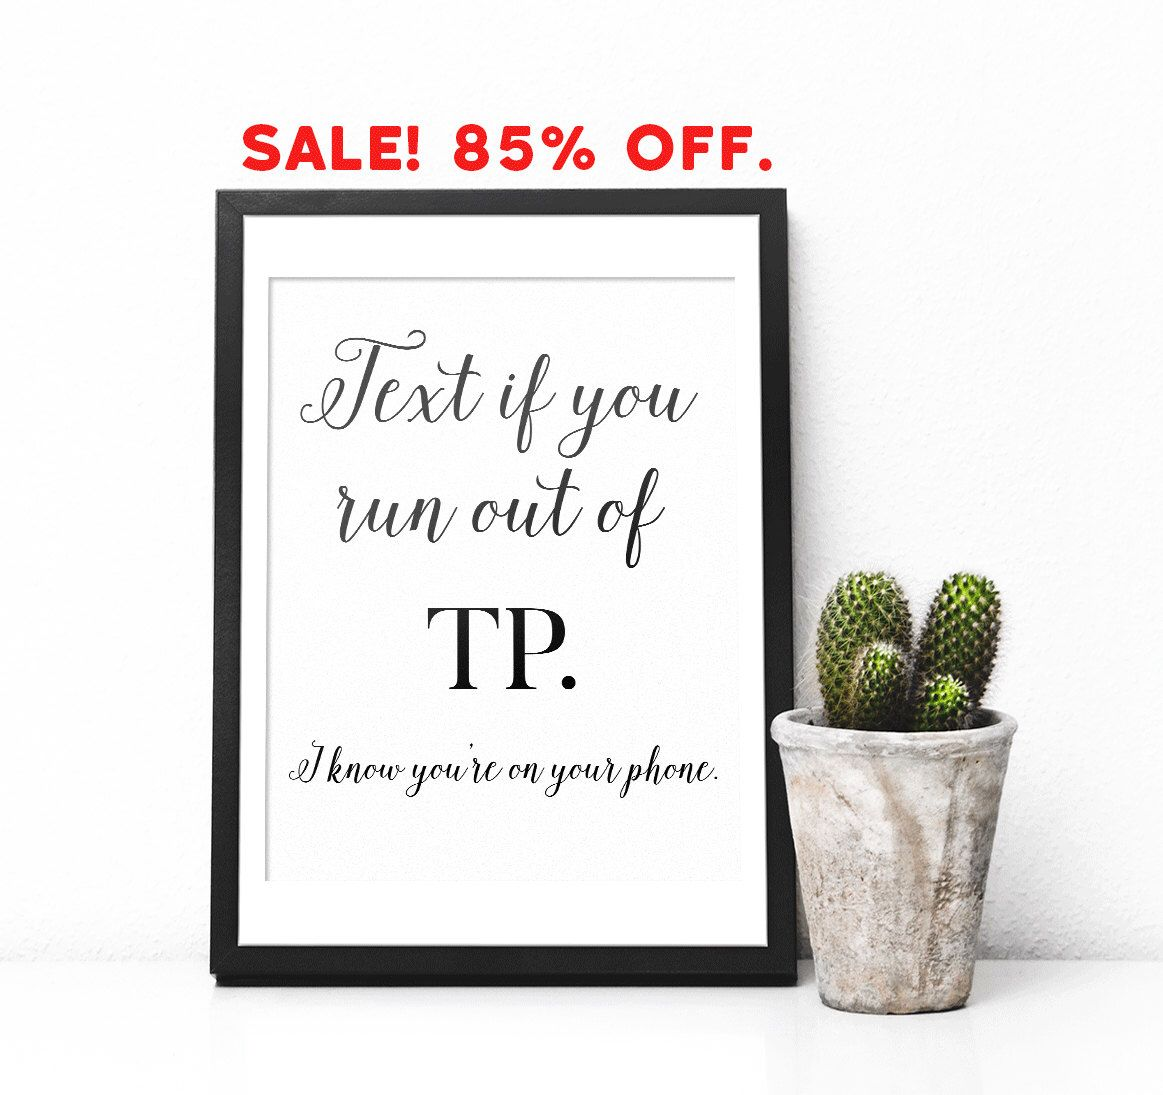 Funny Bathroom Art Typography Print Wall Toilet Humor Decor Printable By